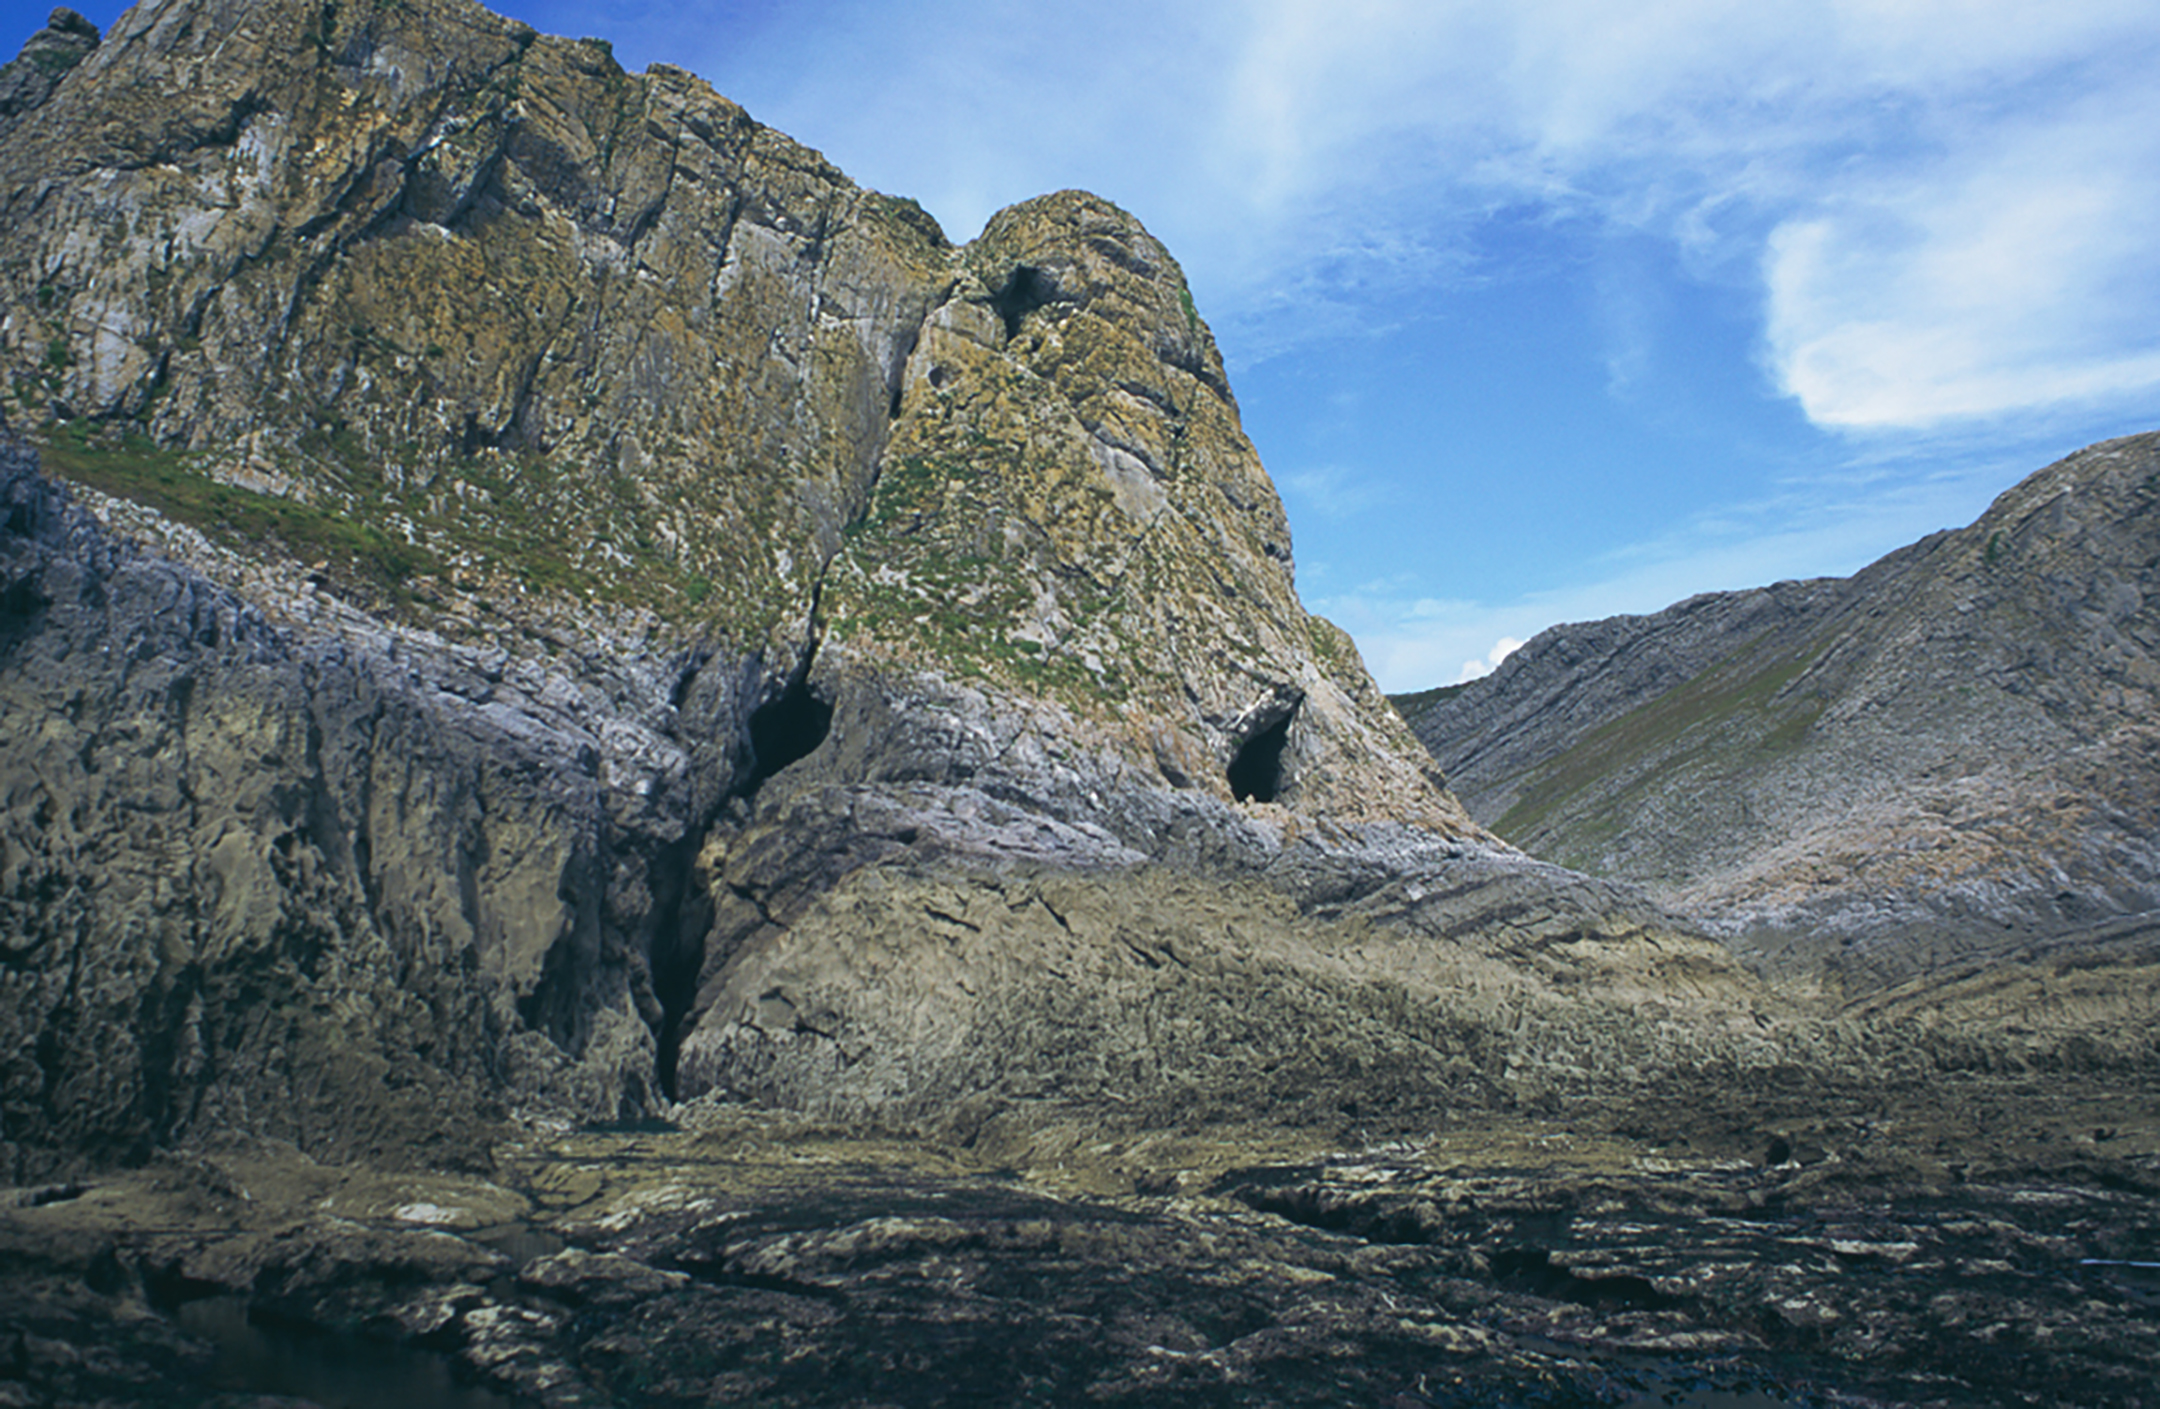 Paviland Cave or Goat's Hole at low tide. The elongated fissure of the cave is at centre-right. The cliffs would have looked out over fertile lowland plains.